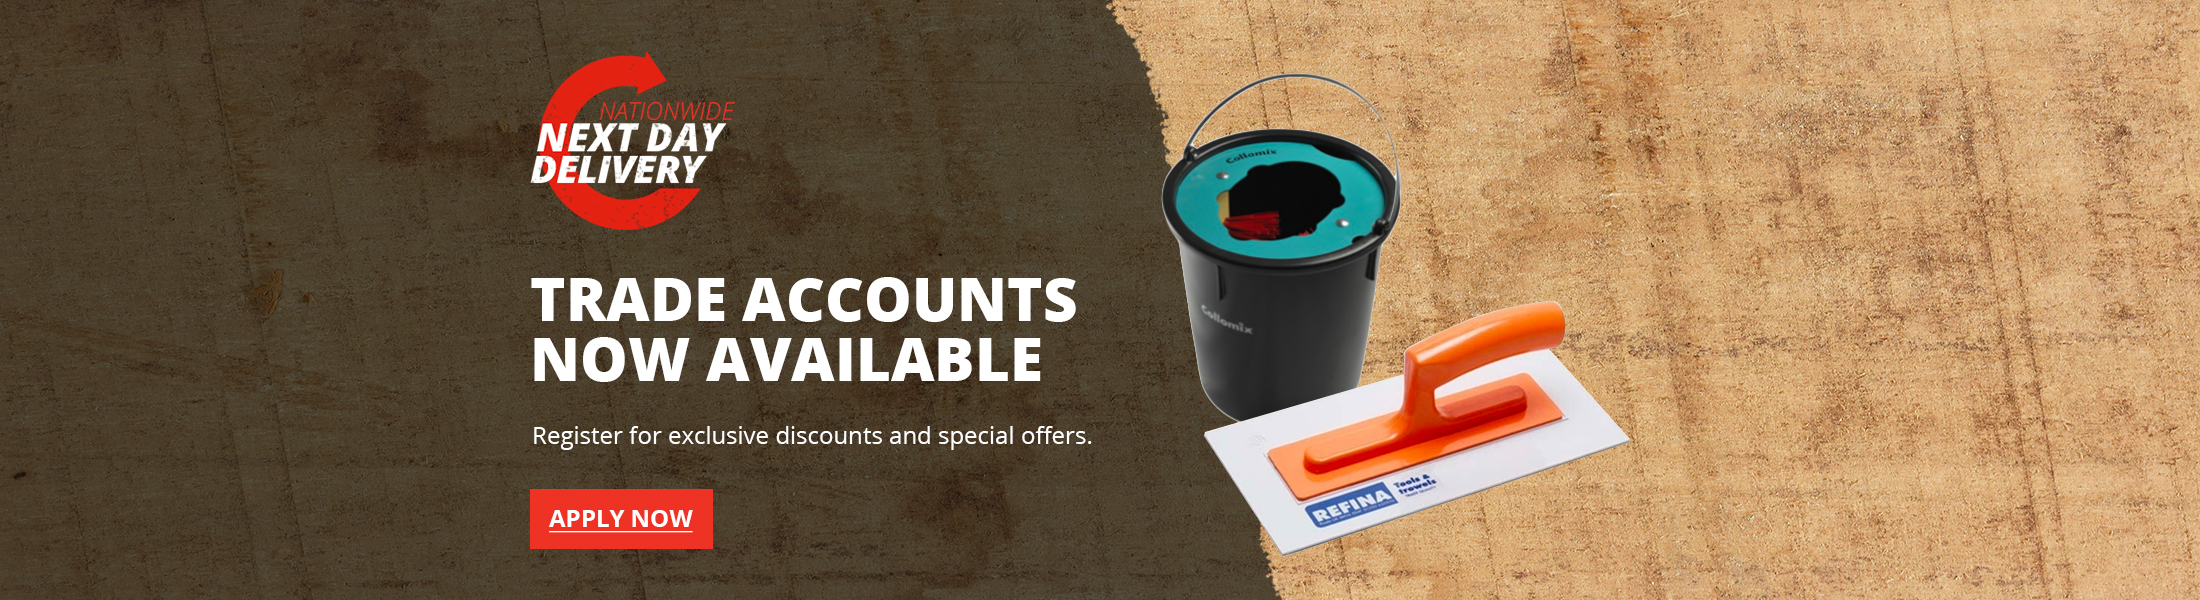 Rendit Trade Discount Accounts Available